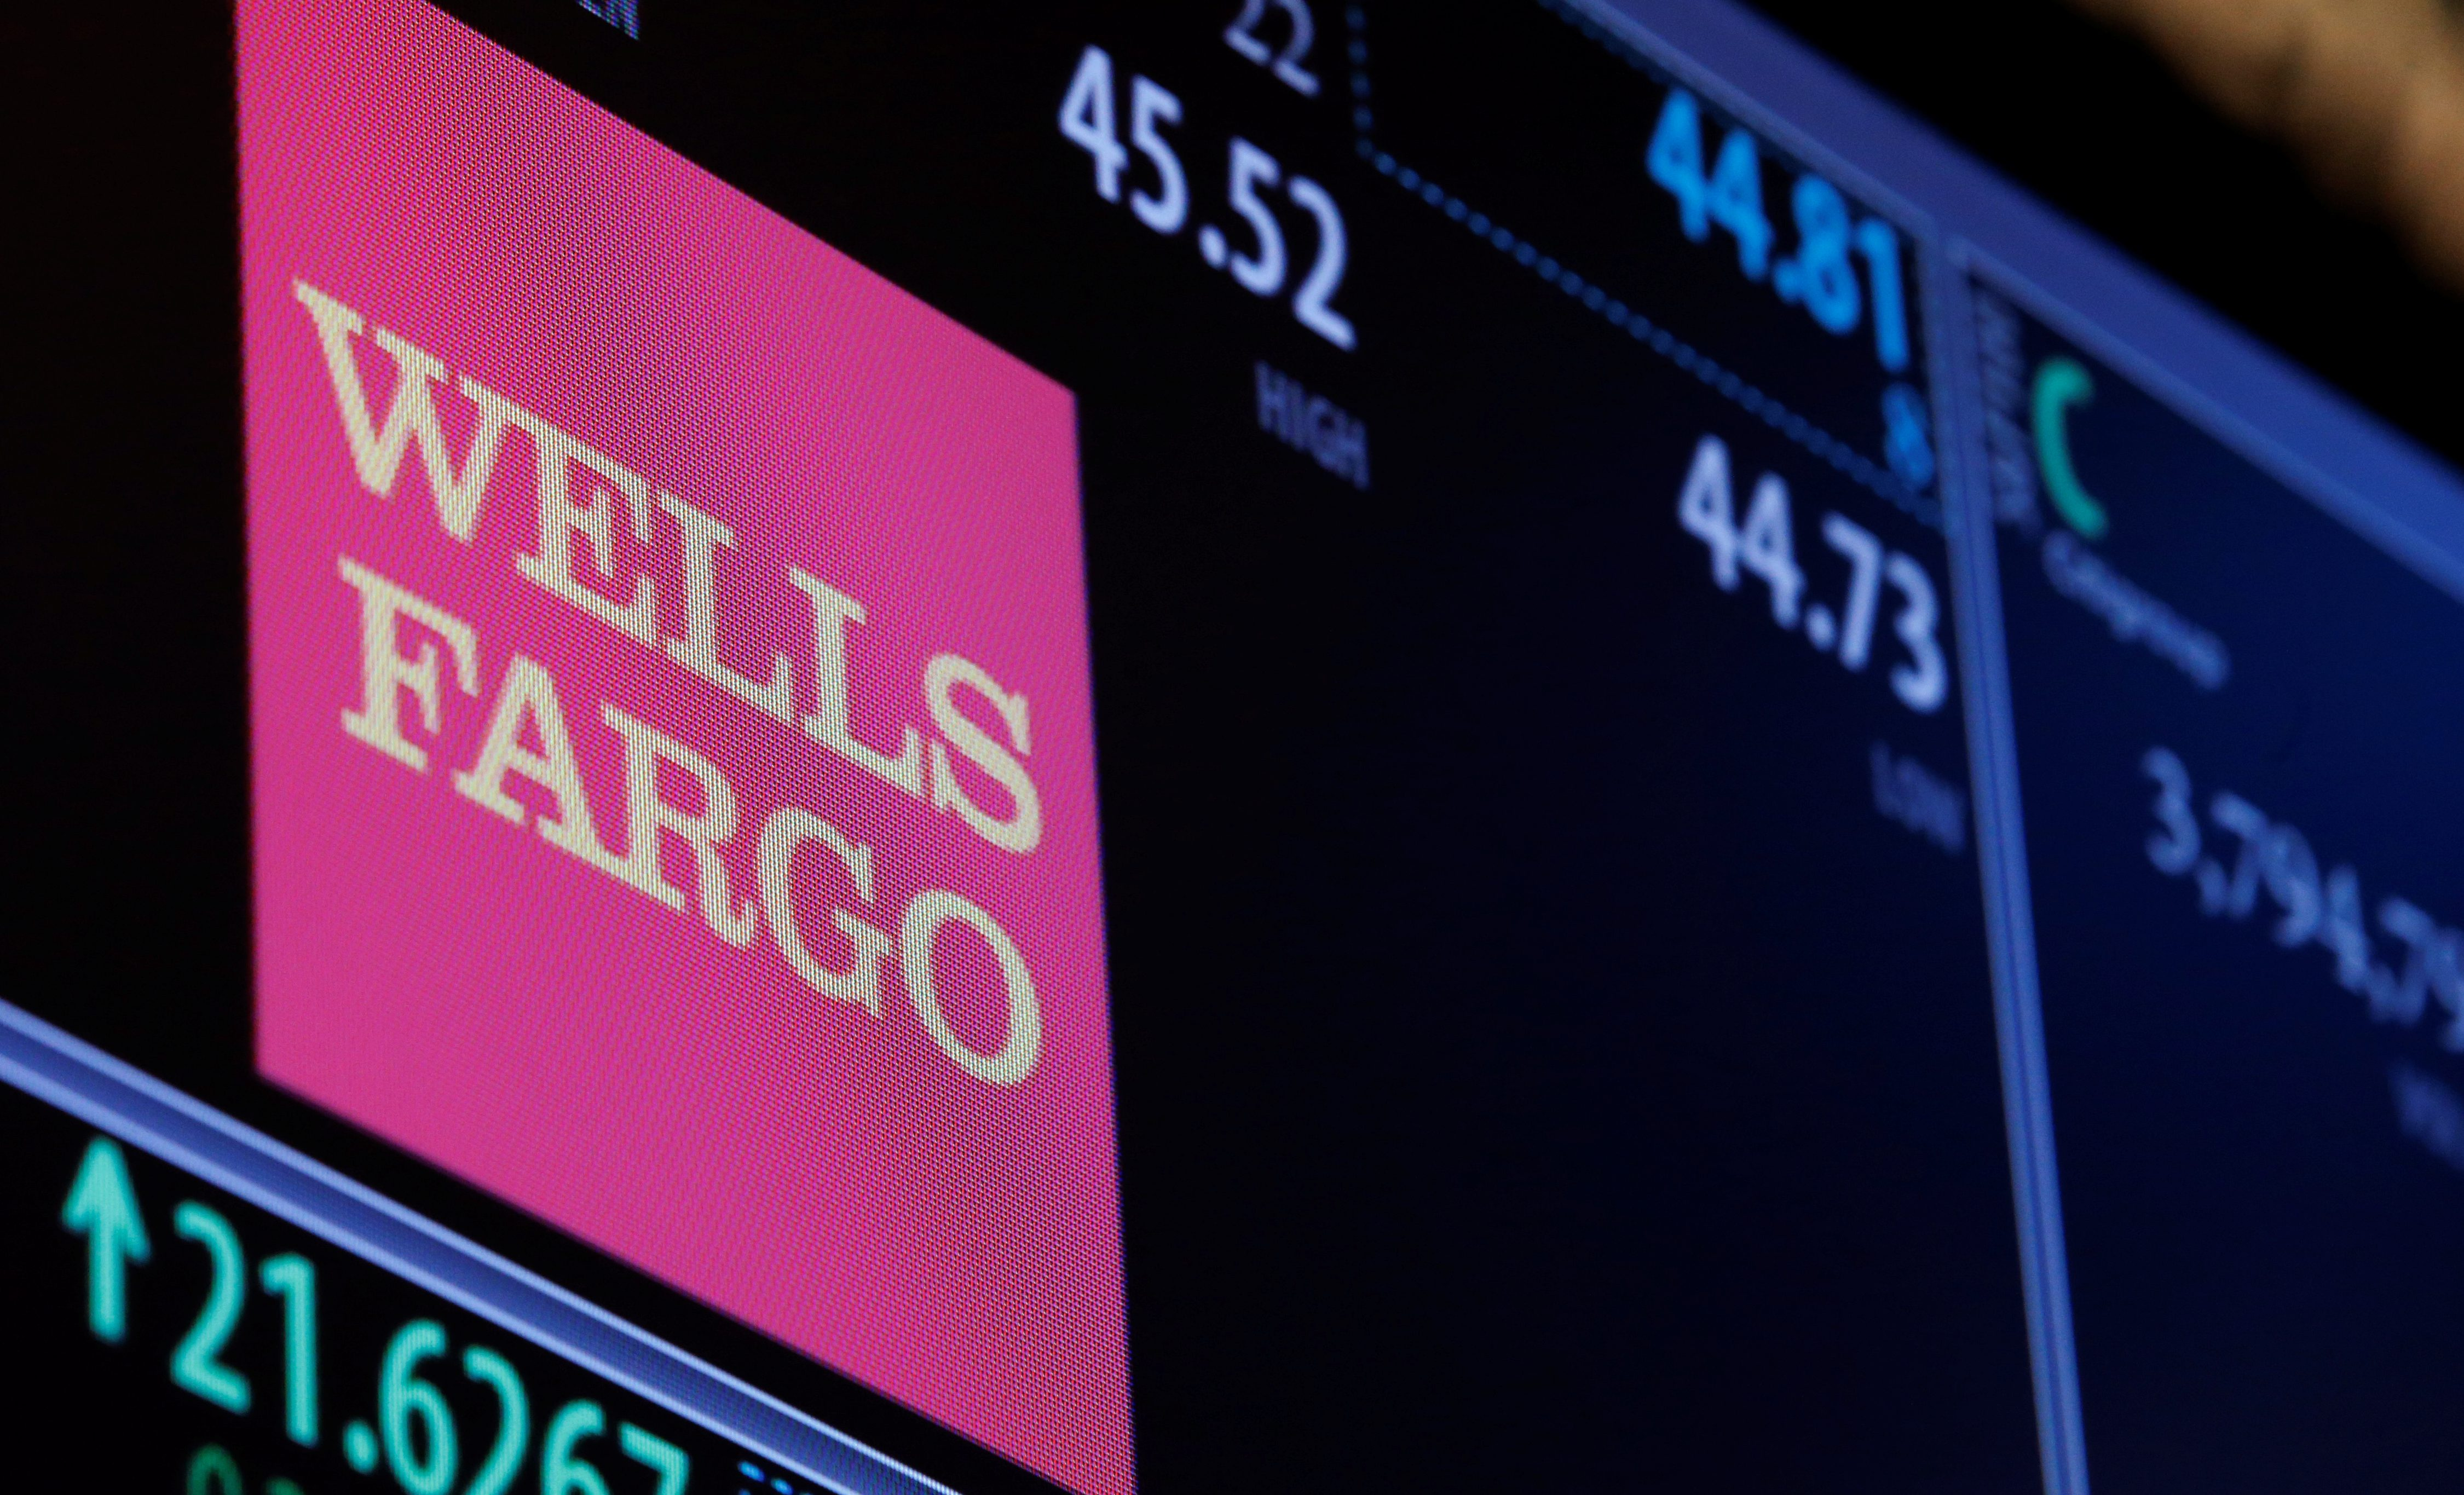 The logo and trading information for Wells Fargo are displayed on a screen on the floor of the NYSE